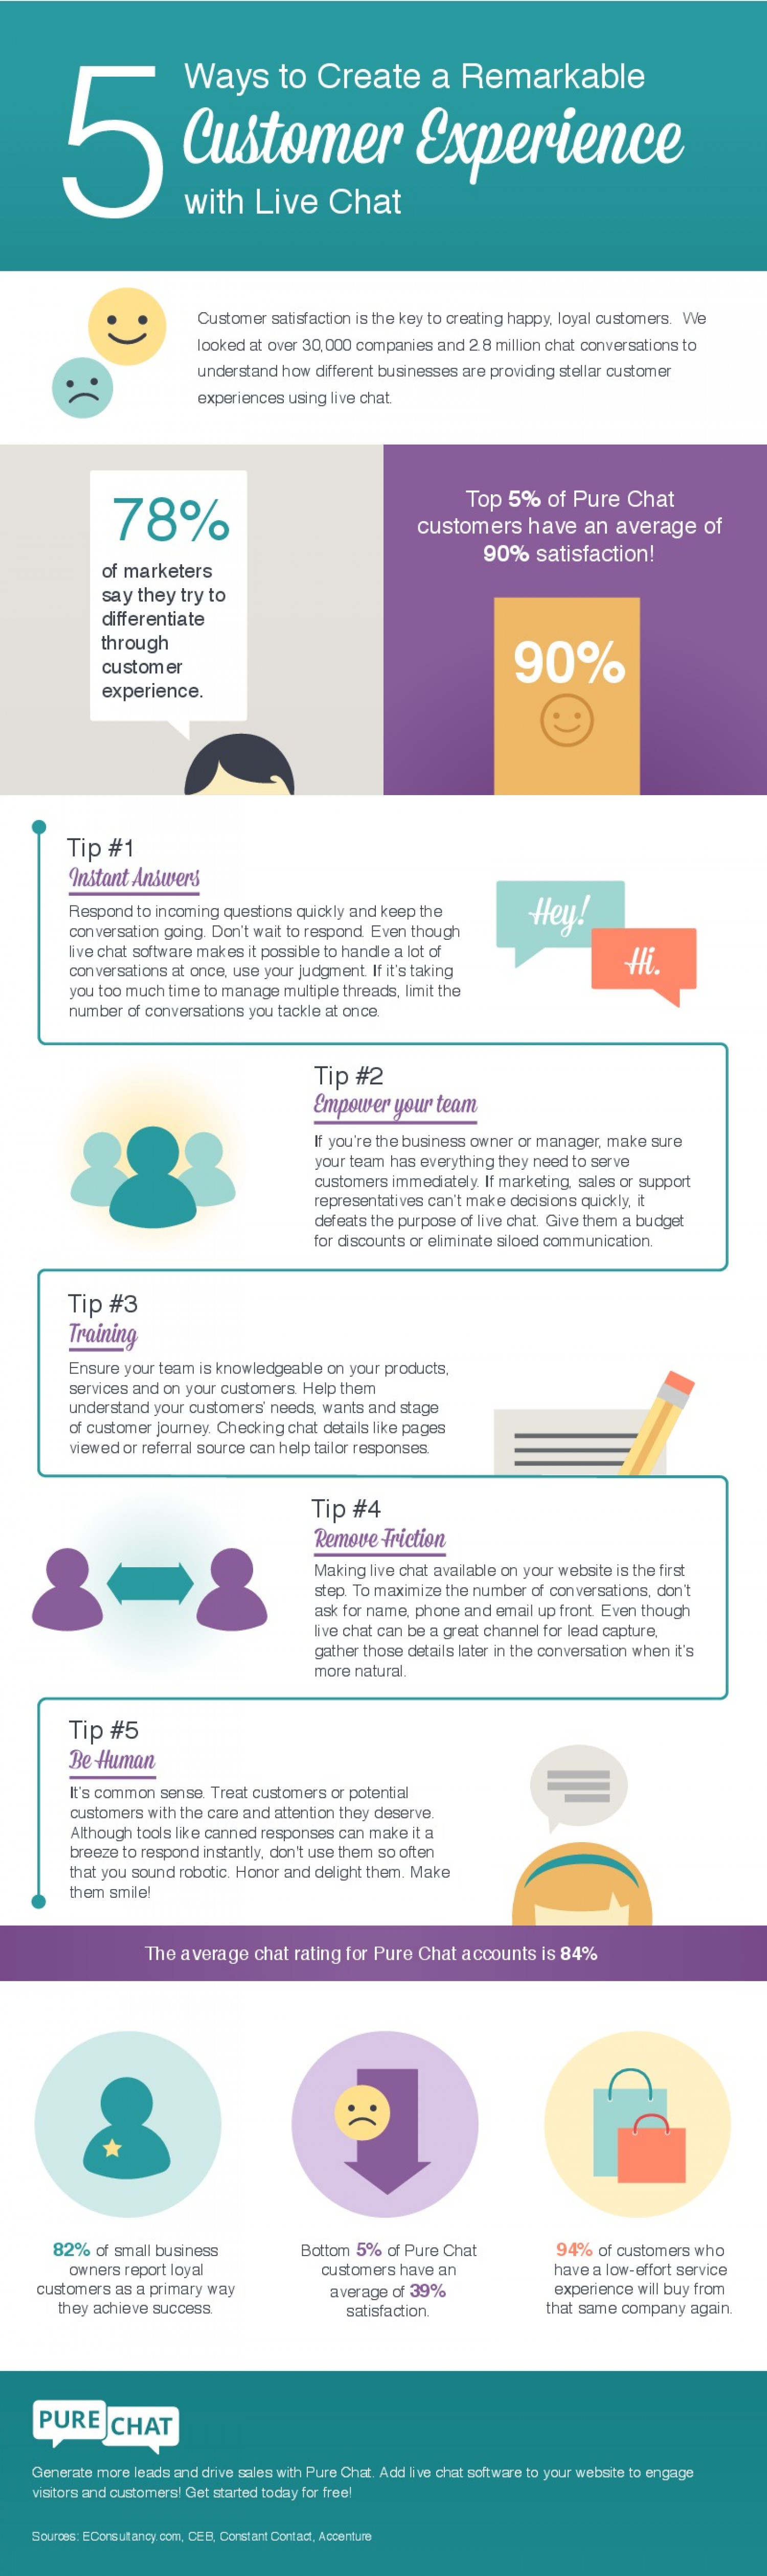 5 Ways to Create a Remarkable Customer Experience with Live Chat Infographic